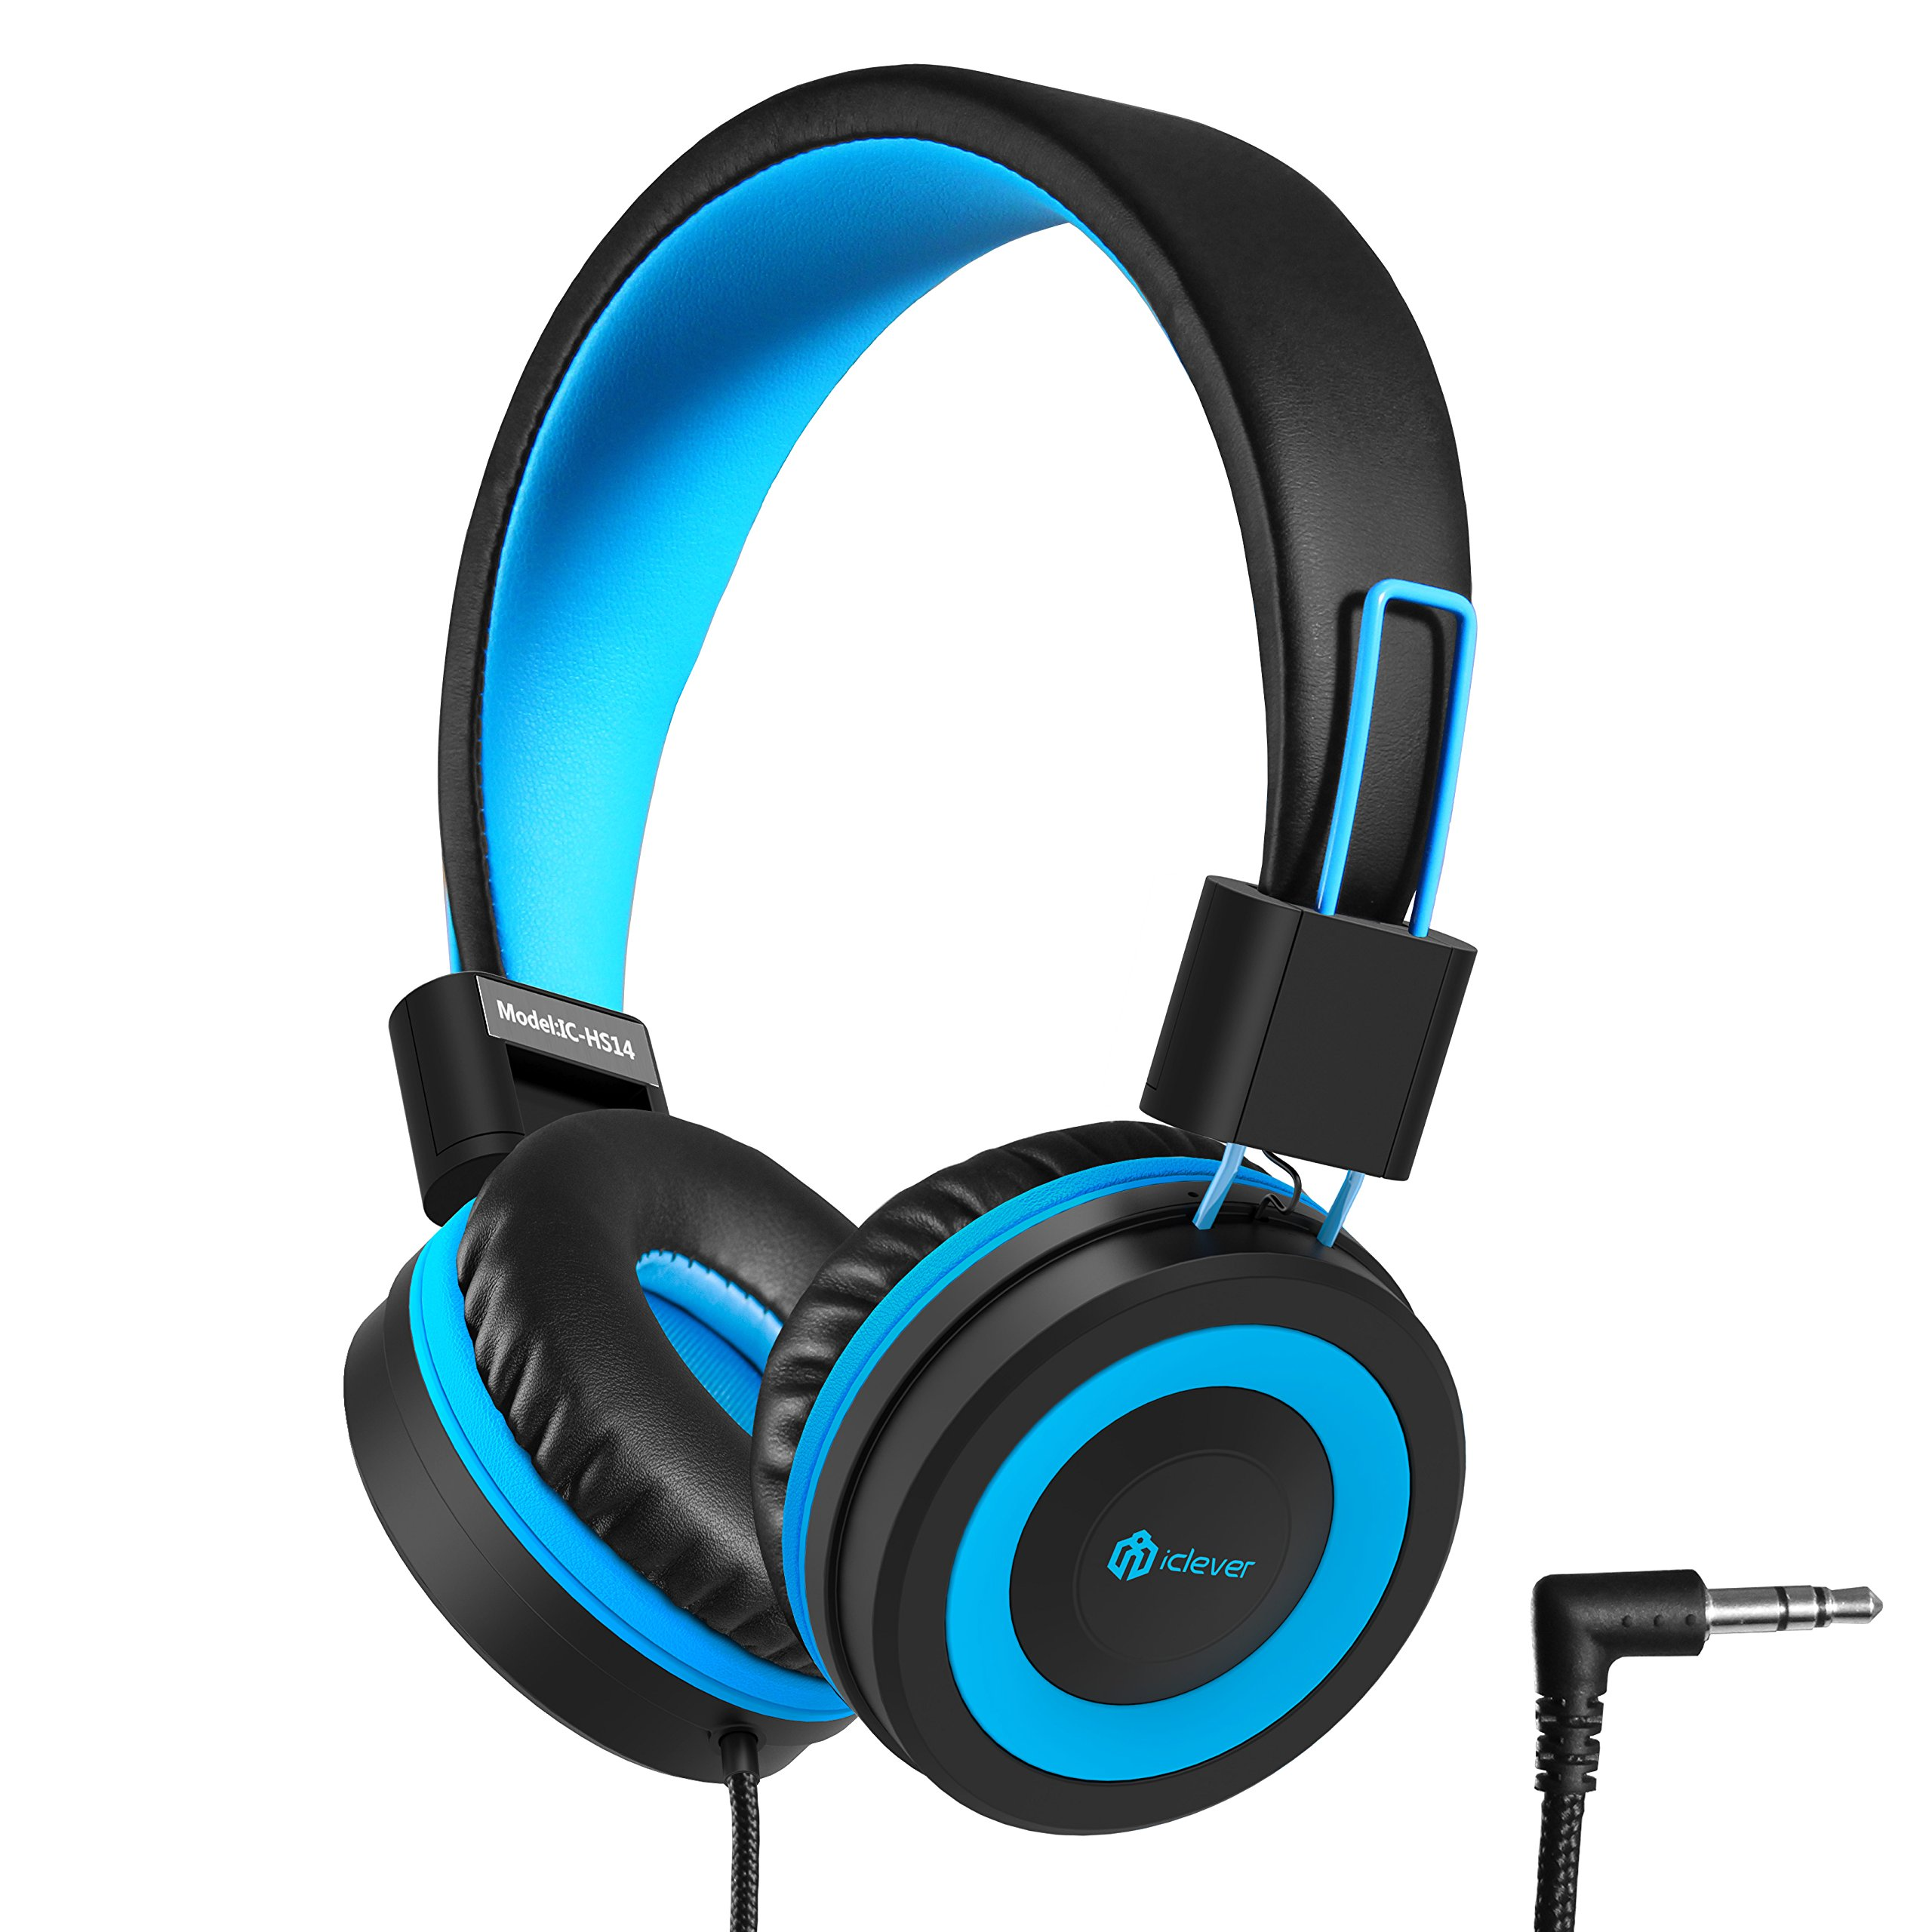 iClever Kids Headphones - Wired Headphones for Kids, Adjustable Headband, Stereo Sound, Foldable, Untangled Wires, 3.5mm Aux Jack, 94dB Volume Limited - Childrens Headphones on Ear, Blue by iClever